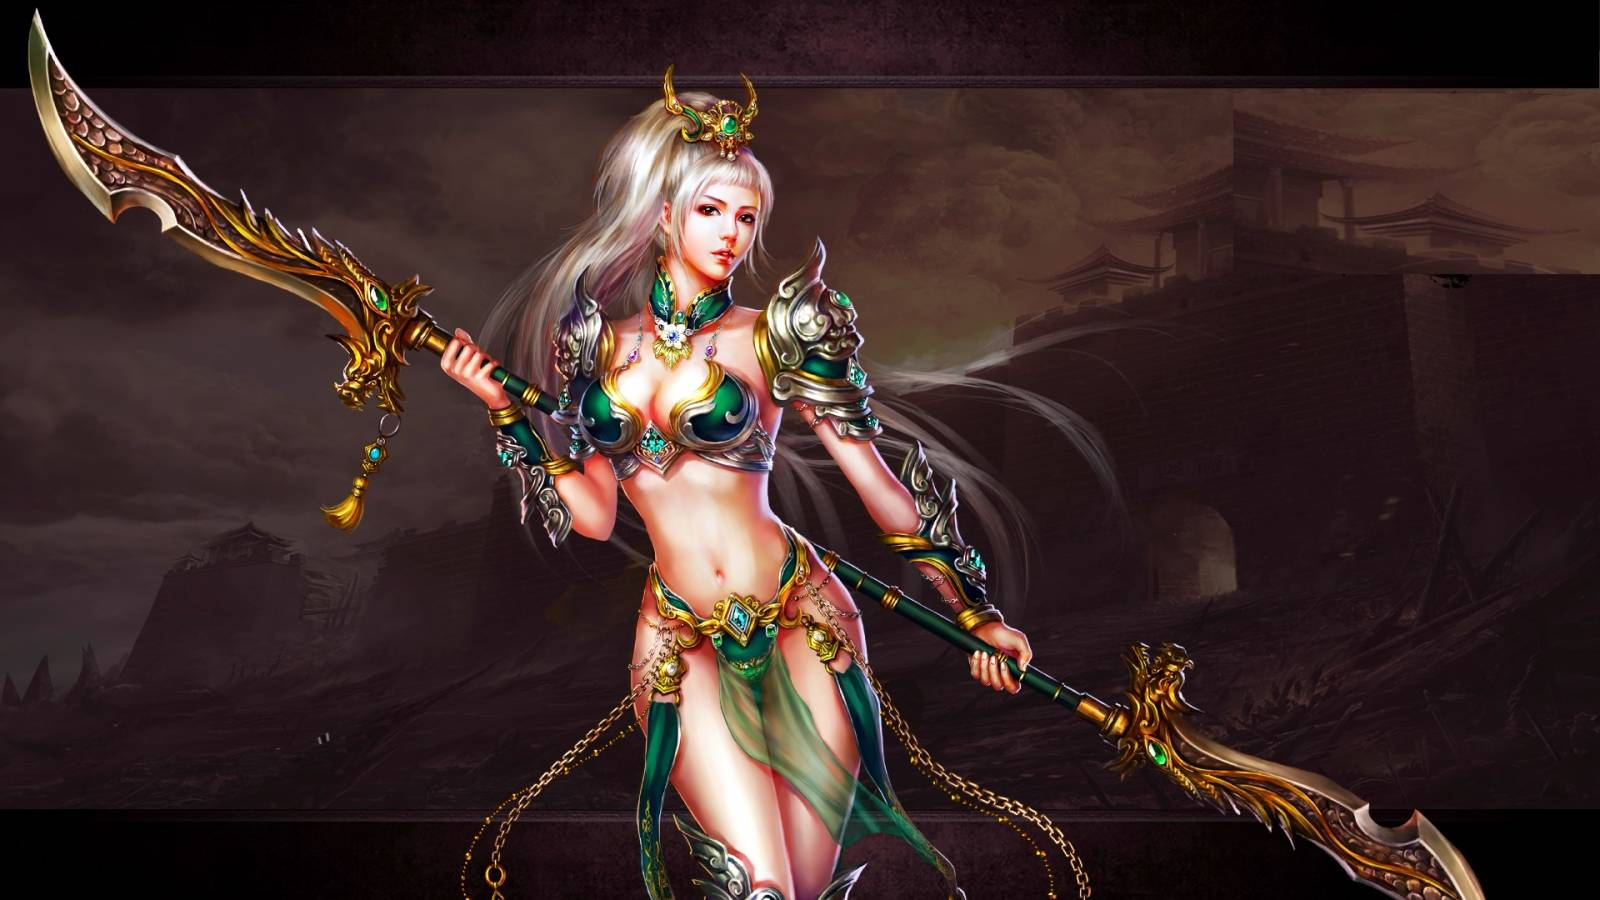 Hd fantasy warrior sexy girl images anime pretty wives